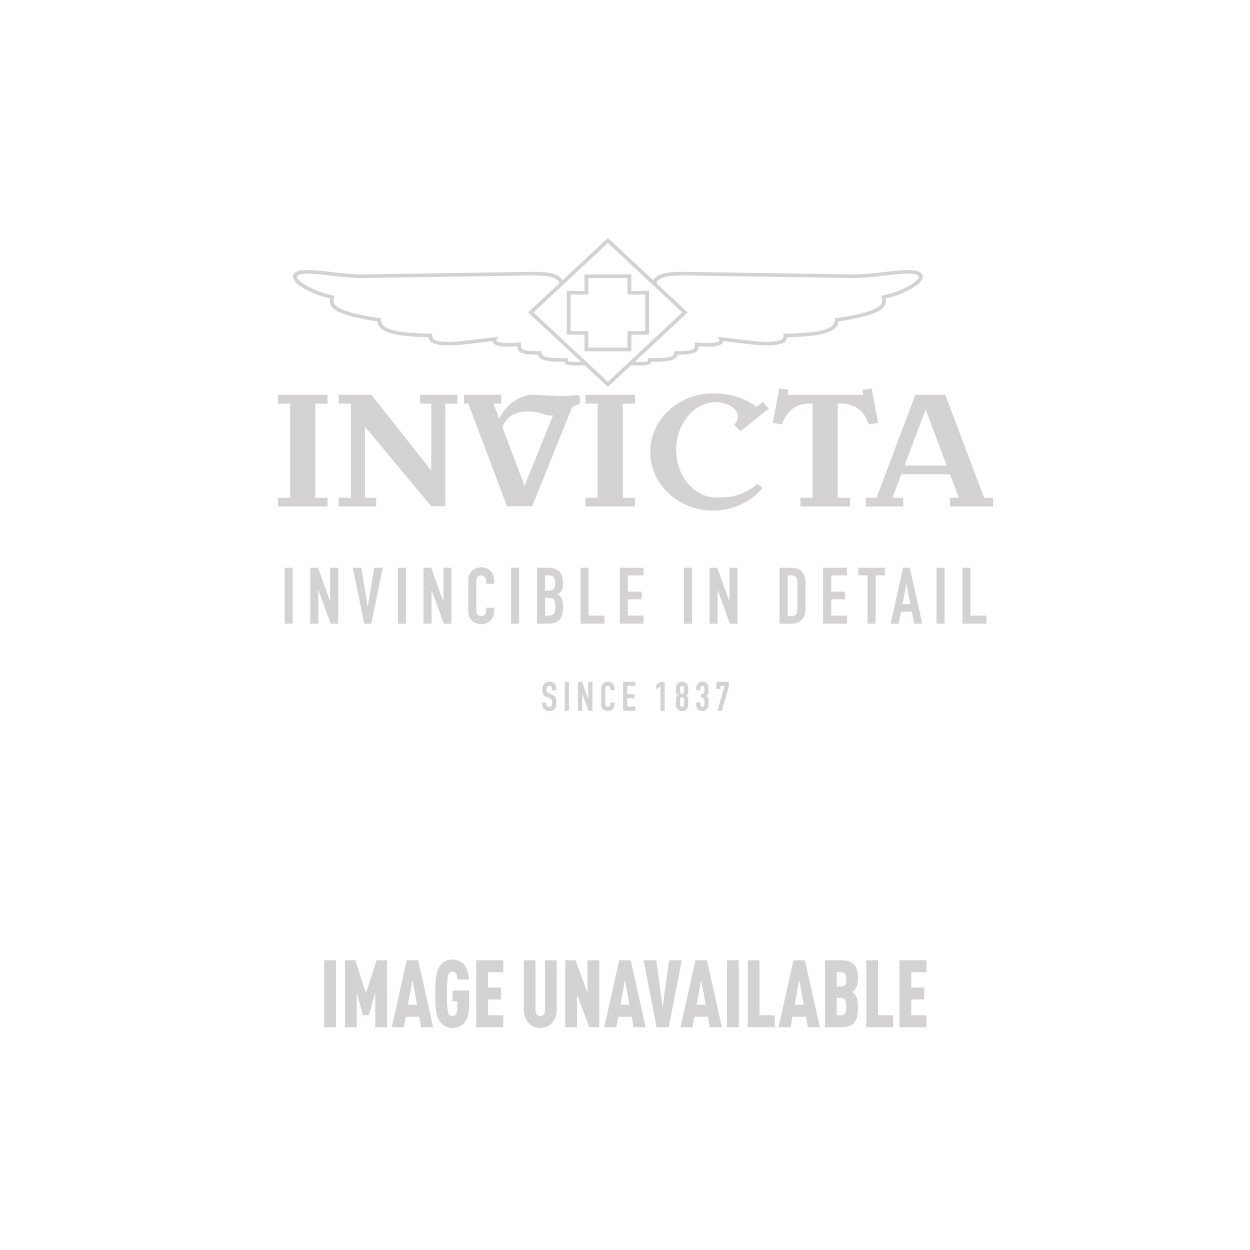 Invicta Pro Diver Swiss Movement Quartz Watch - Stainless Steel case Stainless Steel band - Model 17082